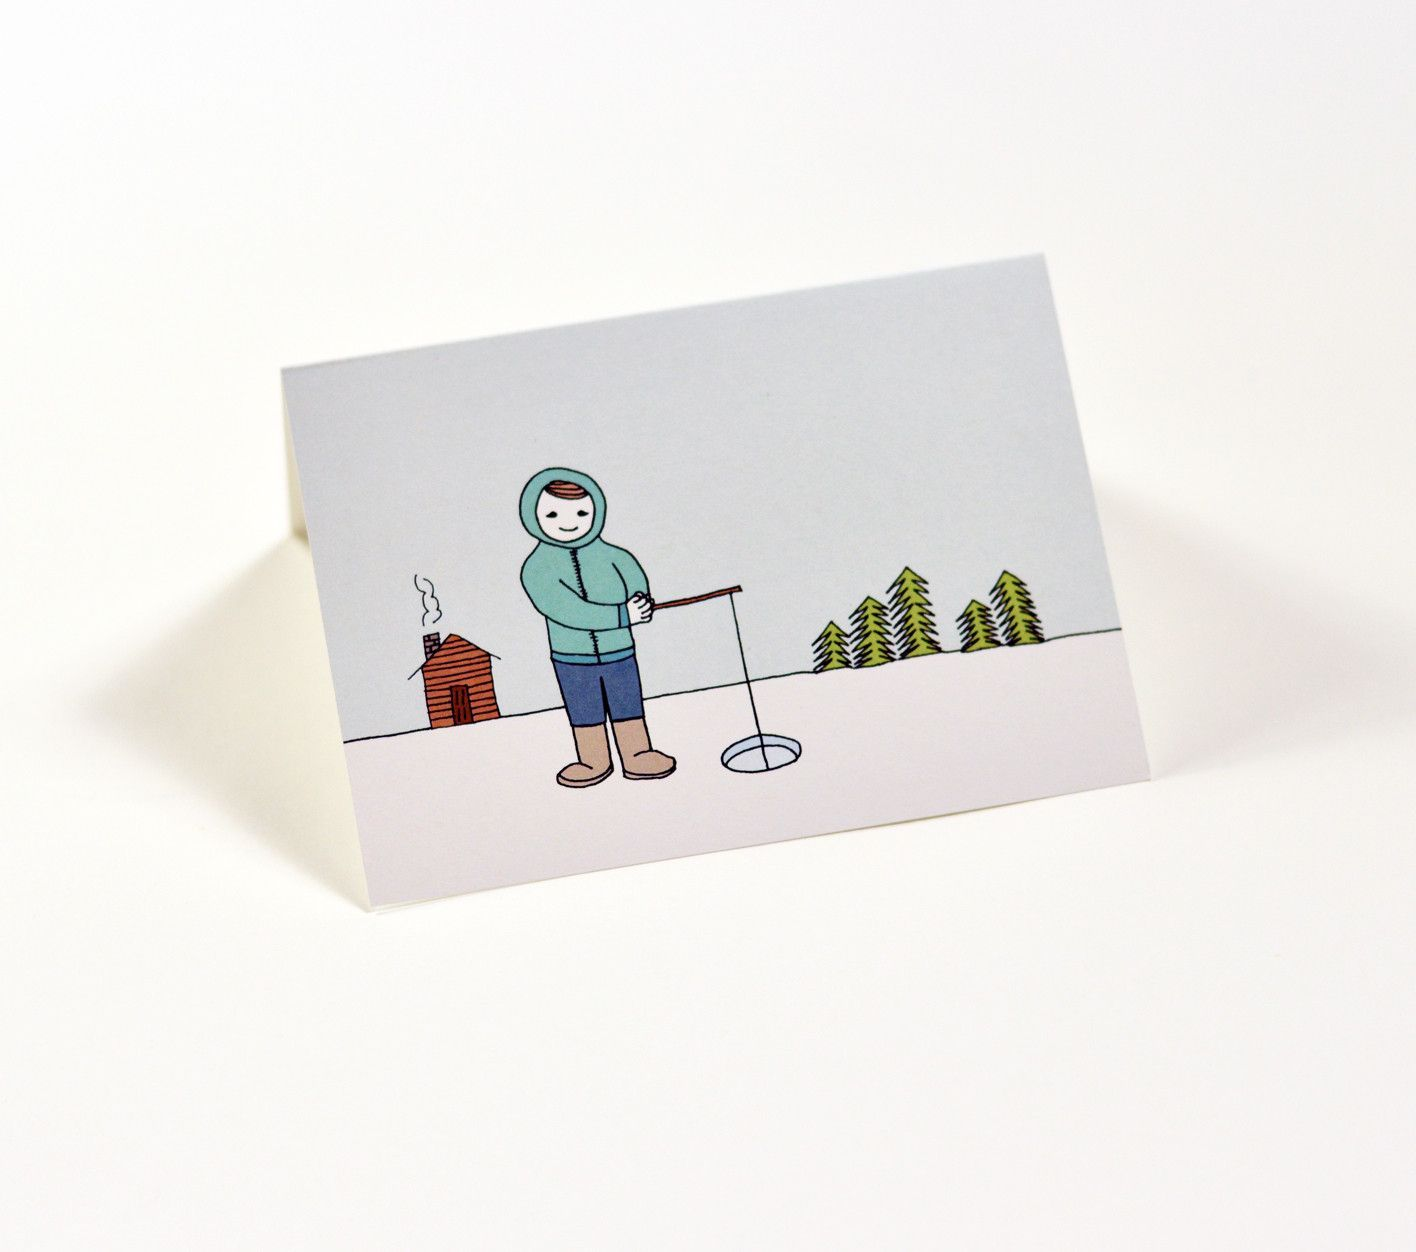 Ice fishing greeting cards by halle design ice fishing pinterest ice fishing greeting cards by halle design kristyandbryce Choice Image